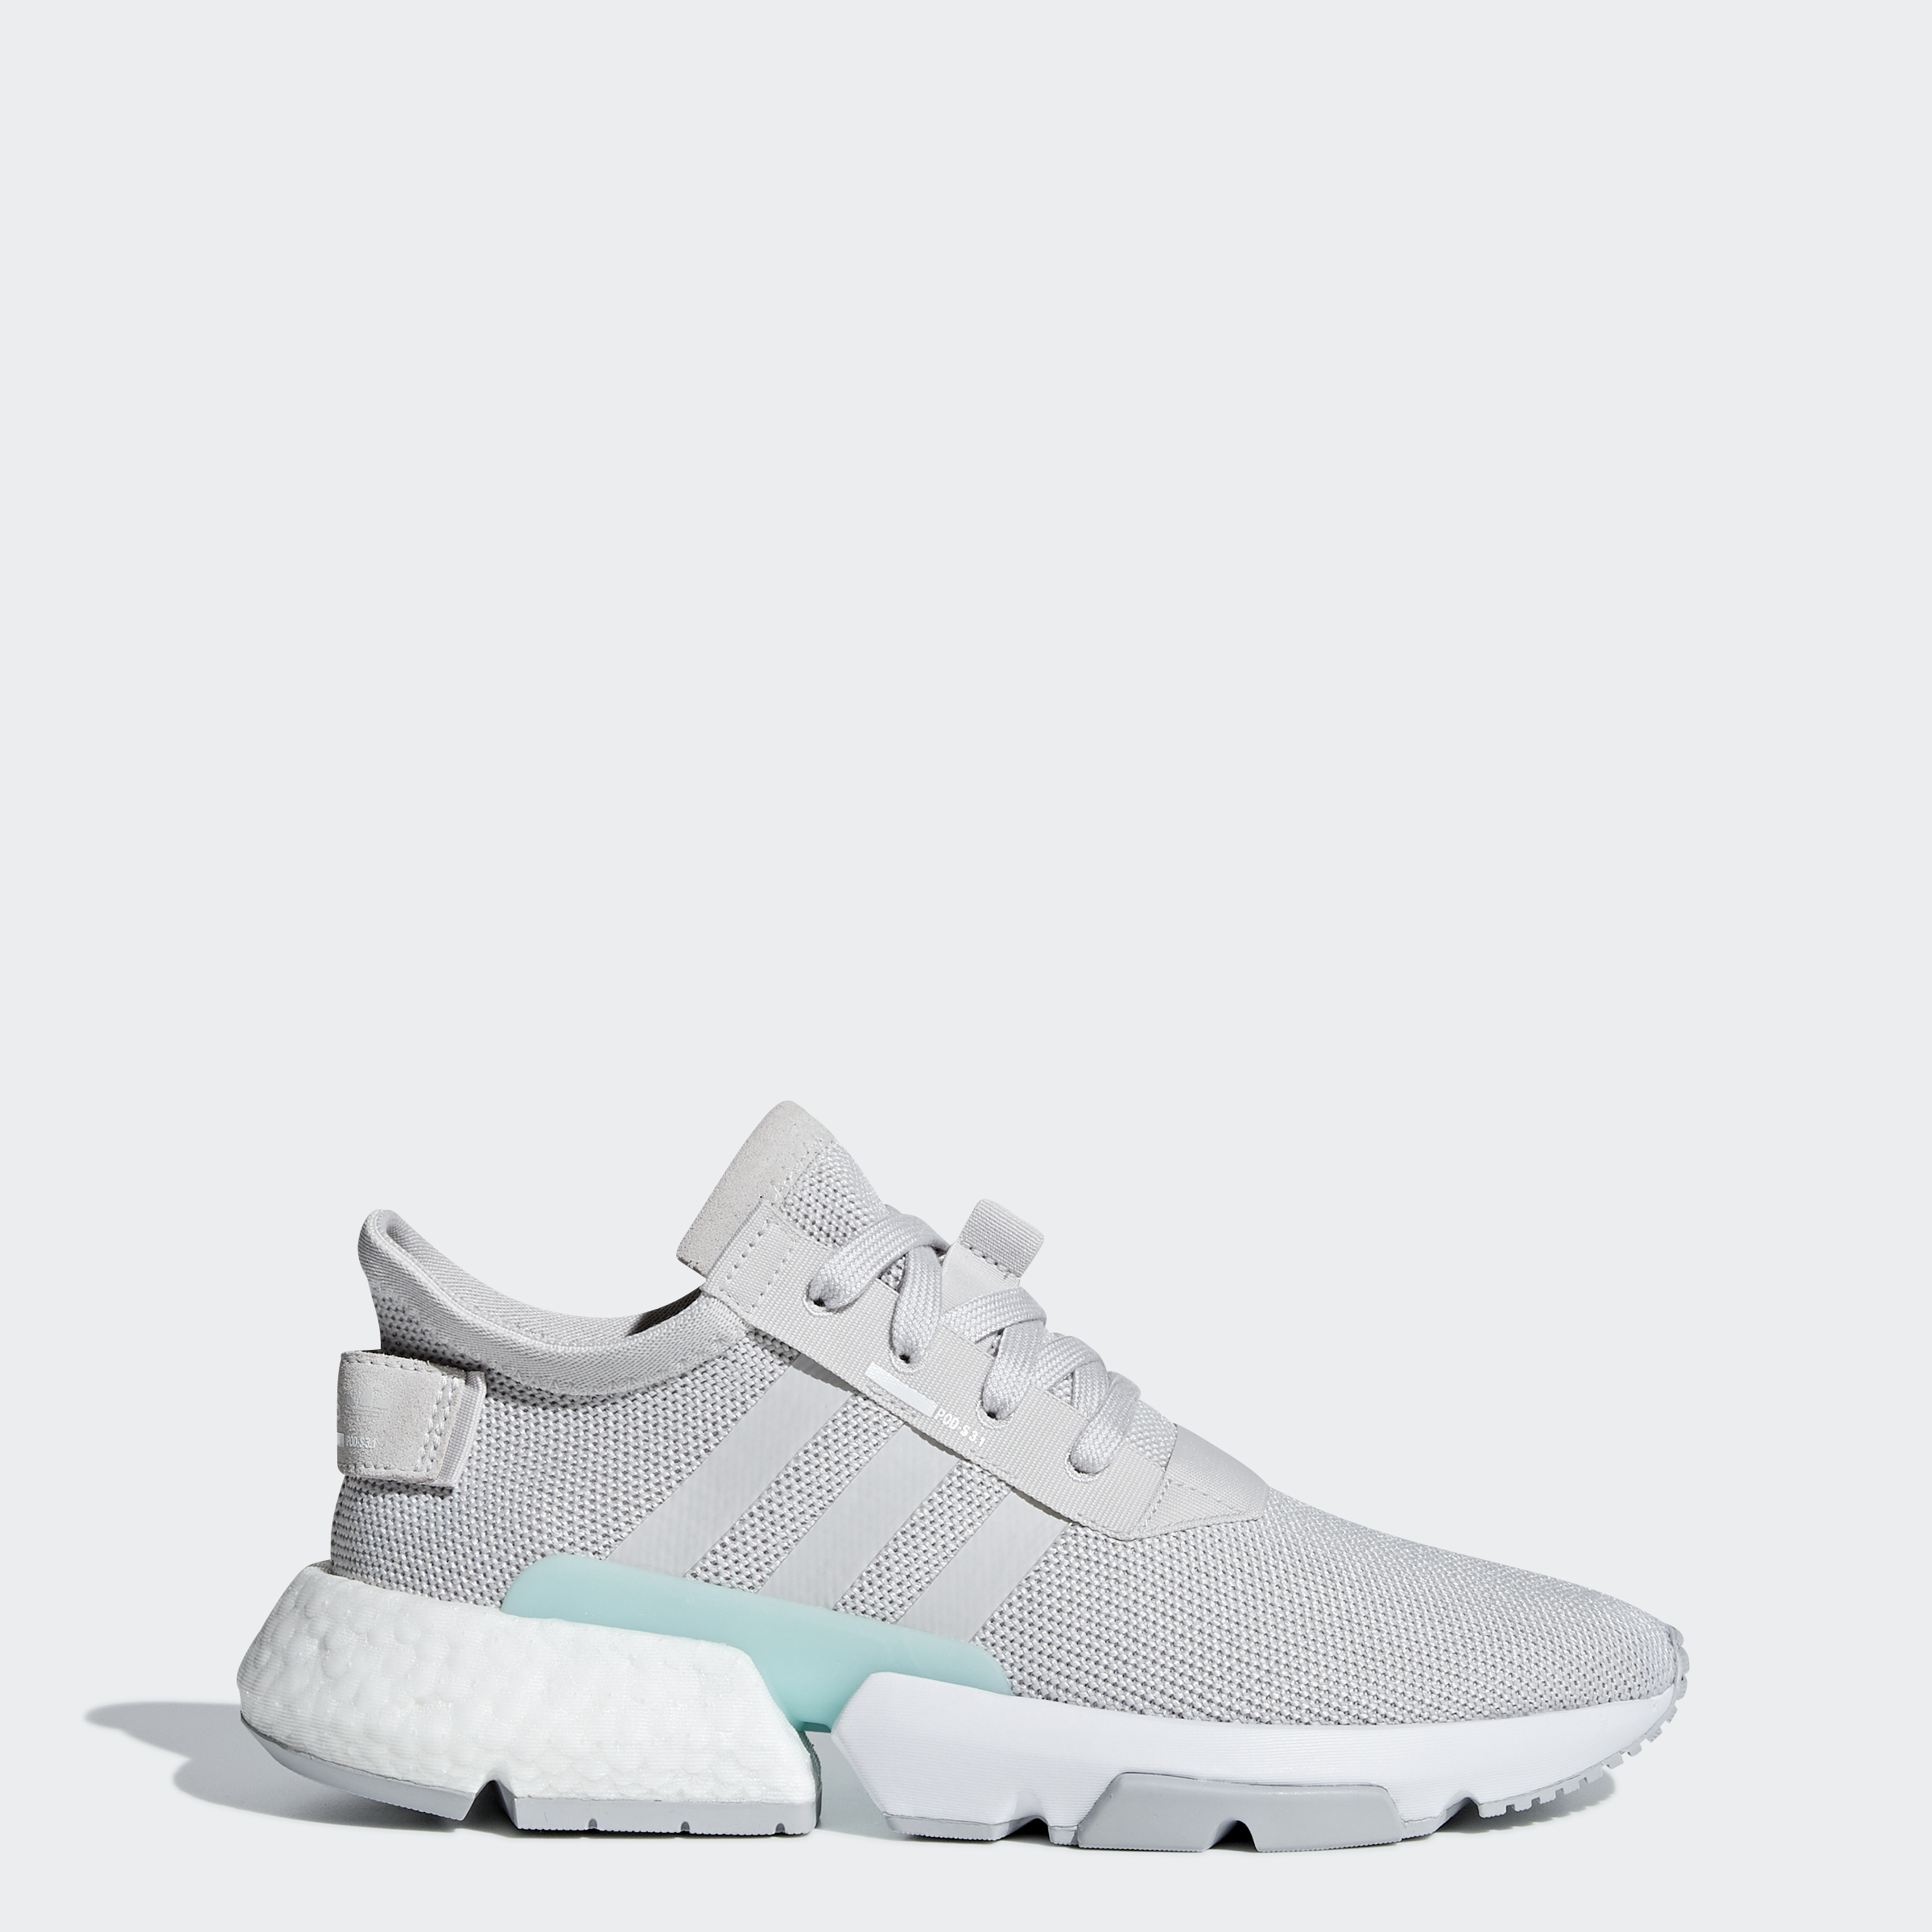 adidas-Originals-POD-S3-1-Shoes-Women-039-s thumbnail 10